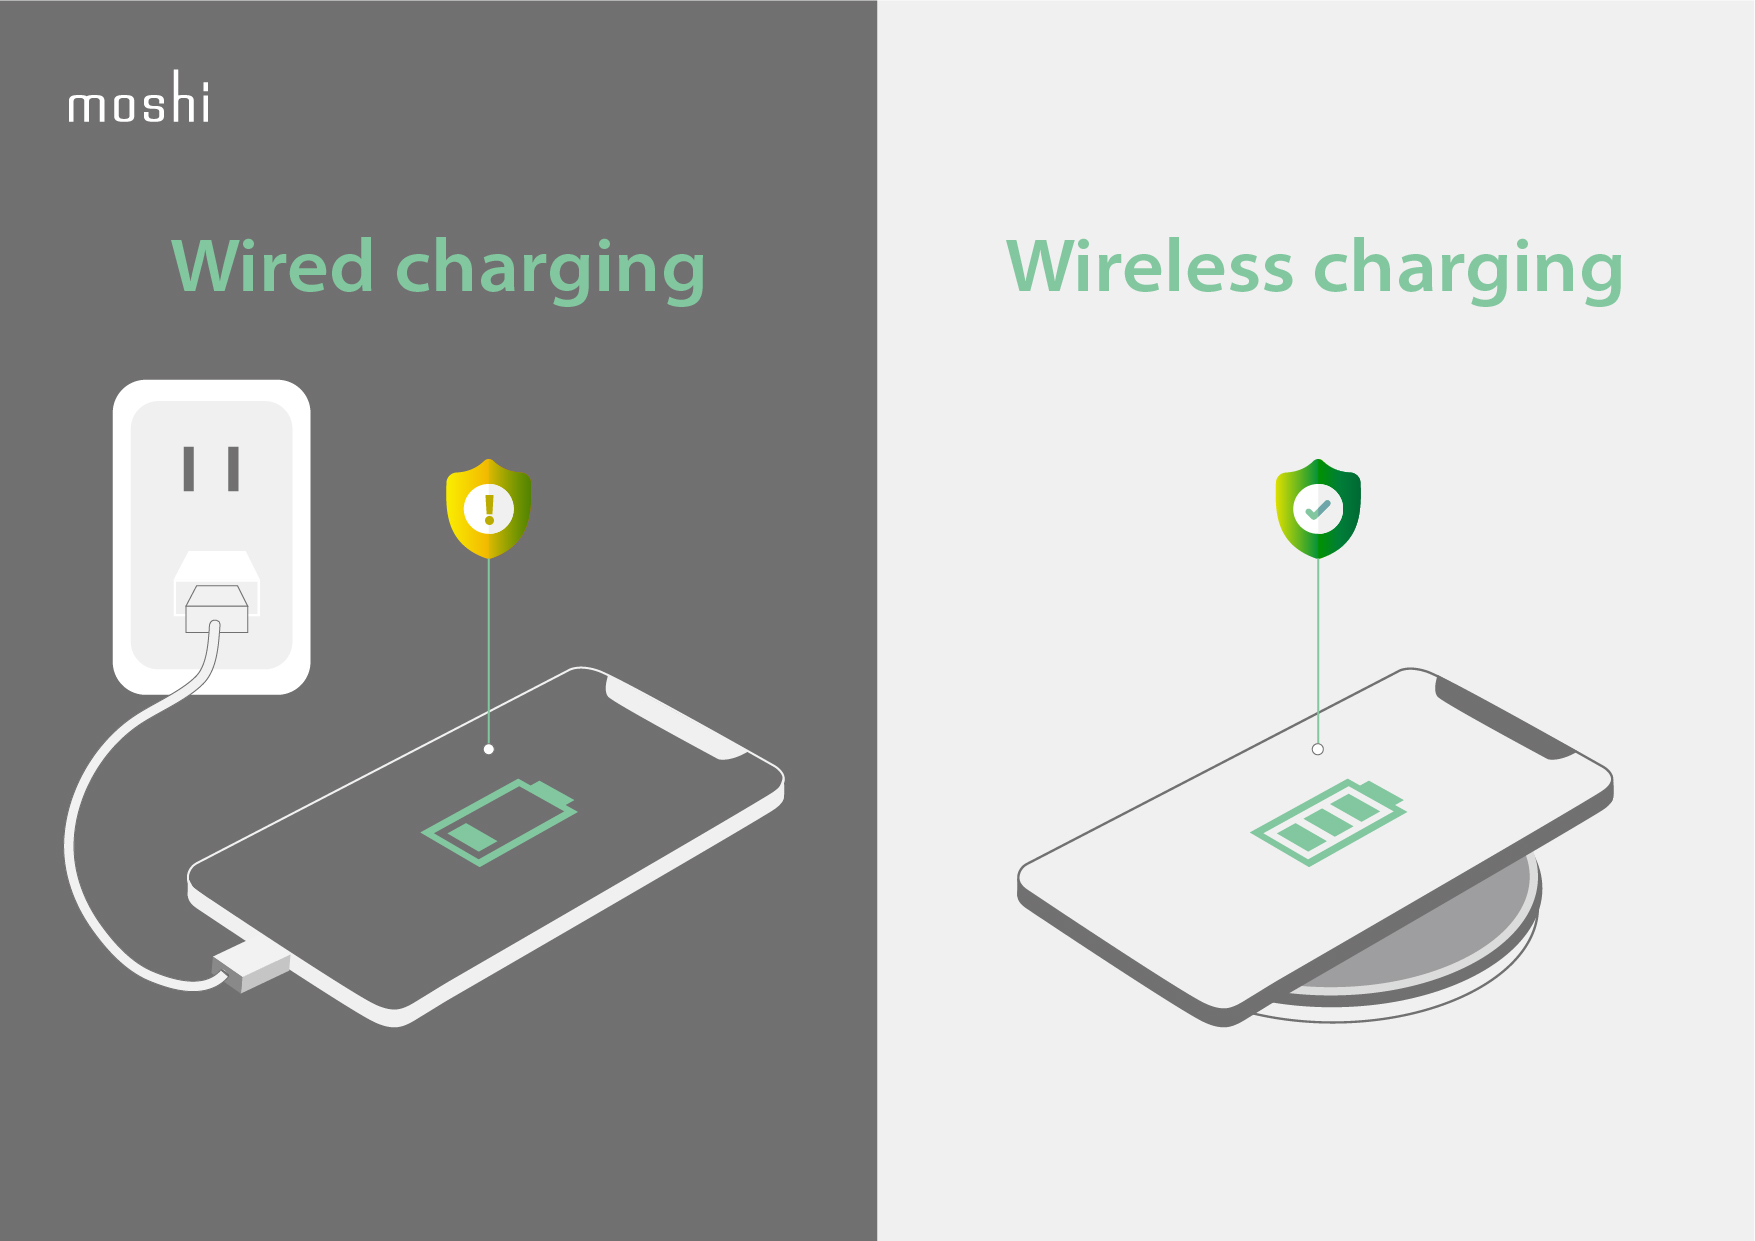 Side by side comparison showing wired charging with an empty battery versus wireless charging with a full battery